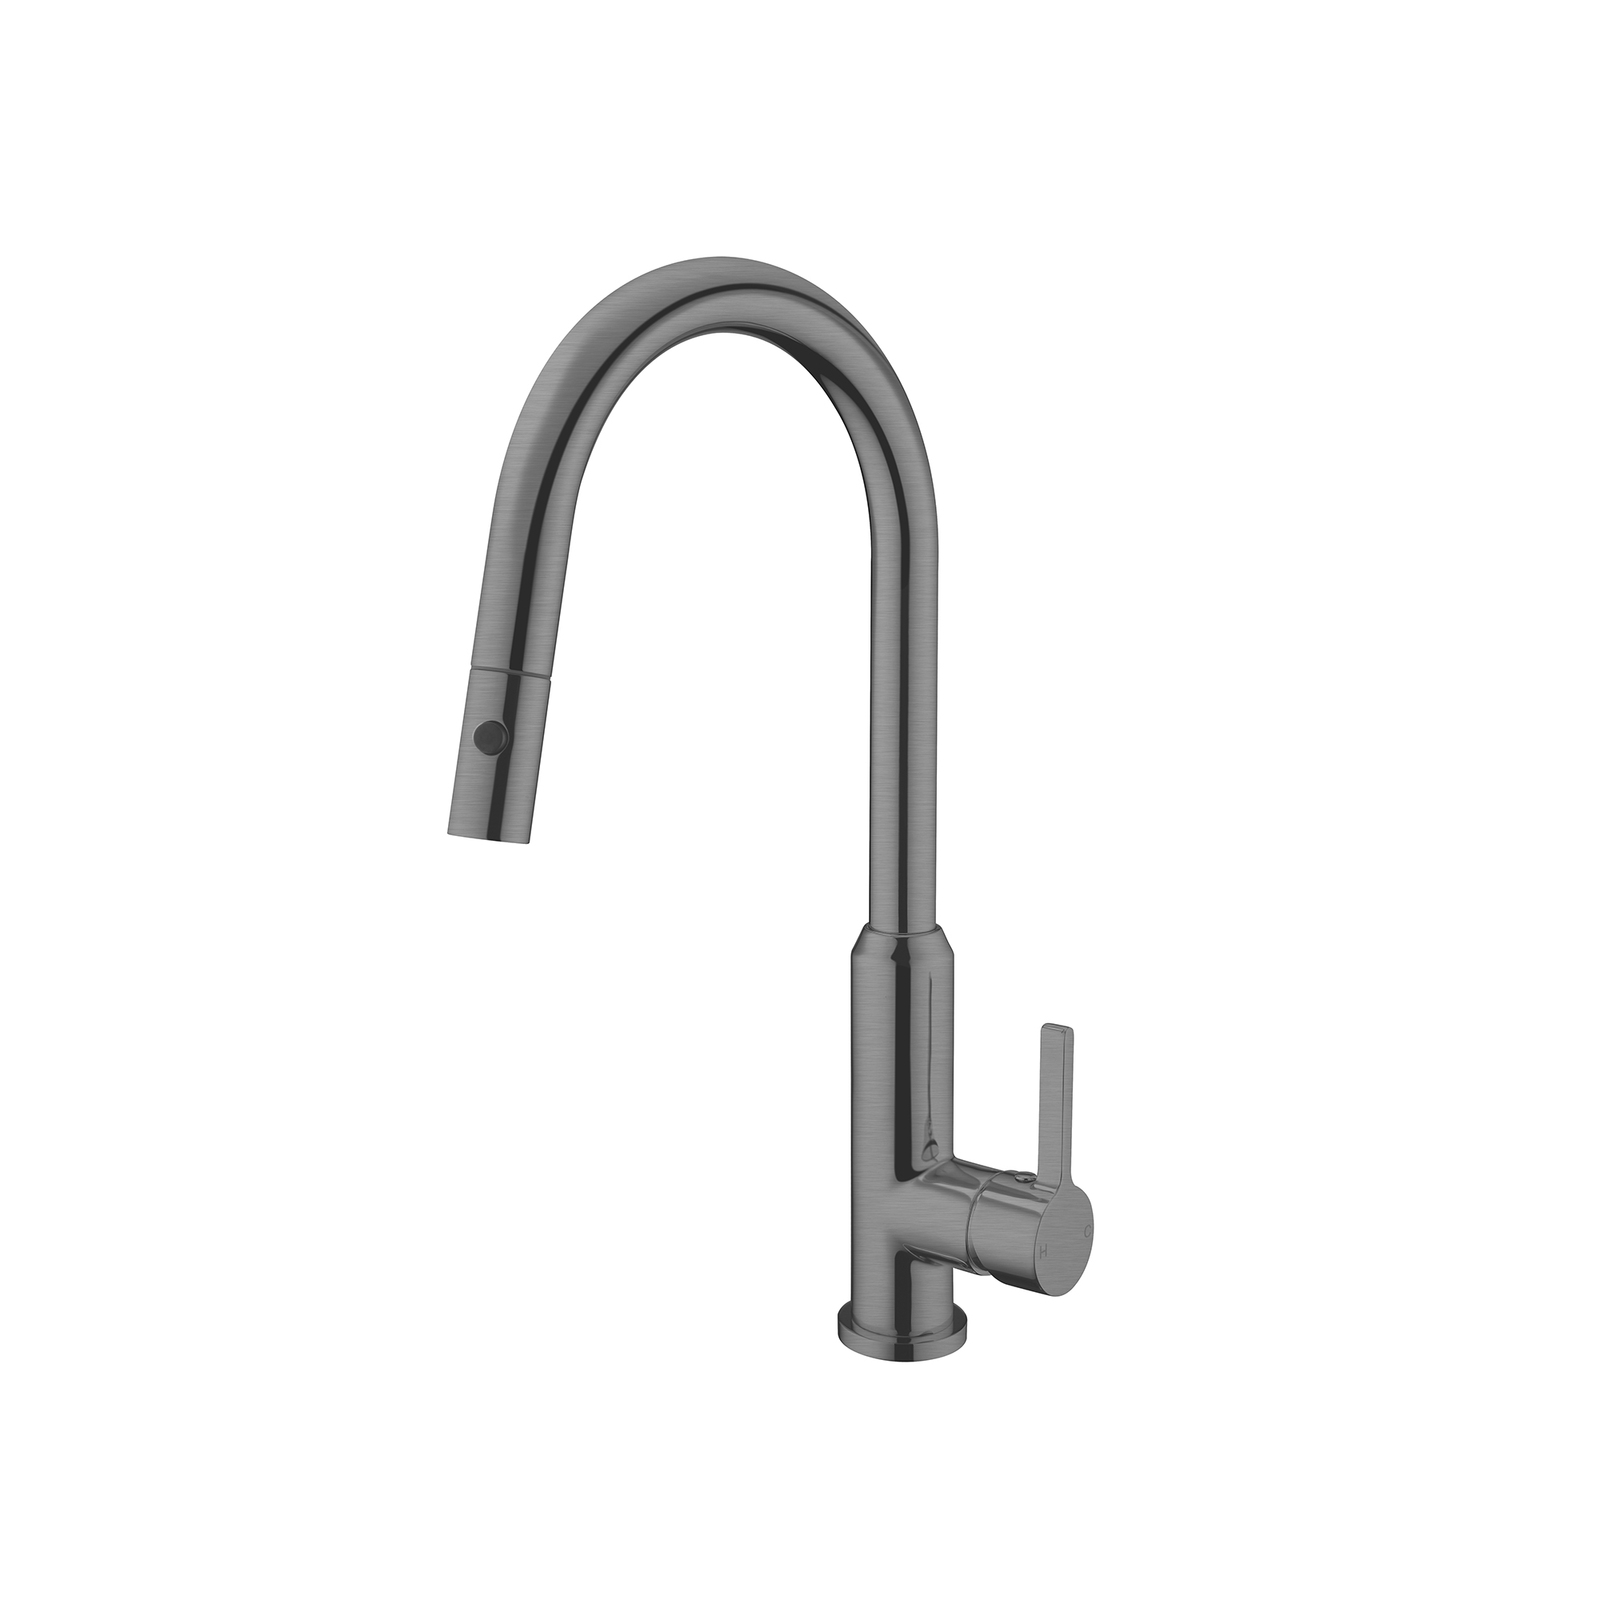 Greens Tapware Regency Pull Down Kitchen Sink Mixer Tap Dual Spray Chrome 15053001